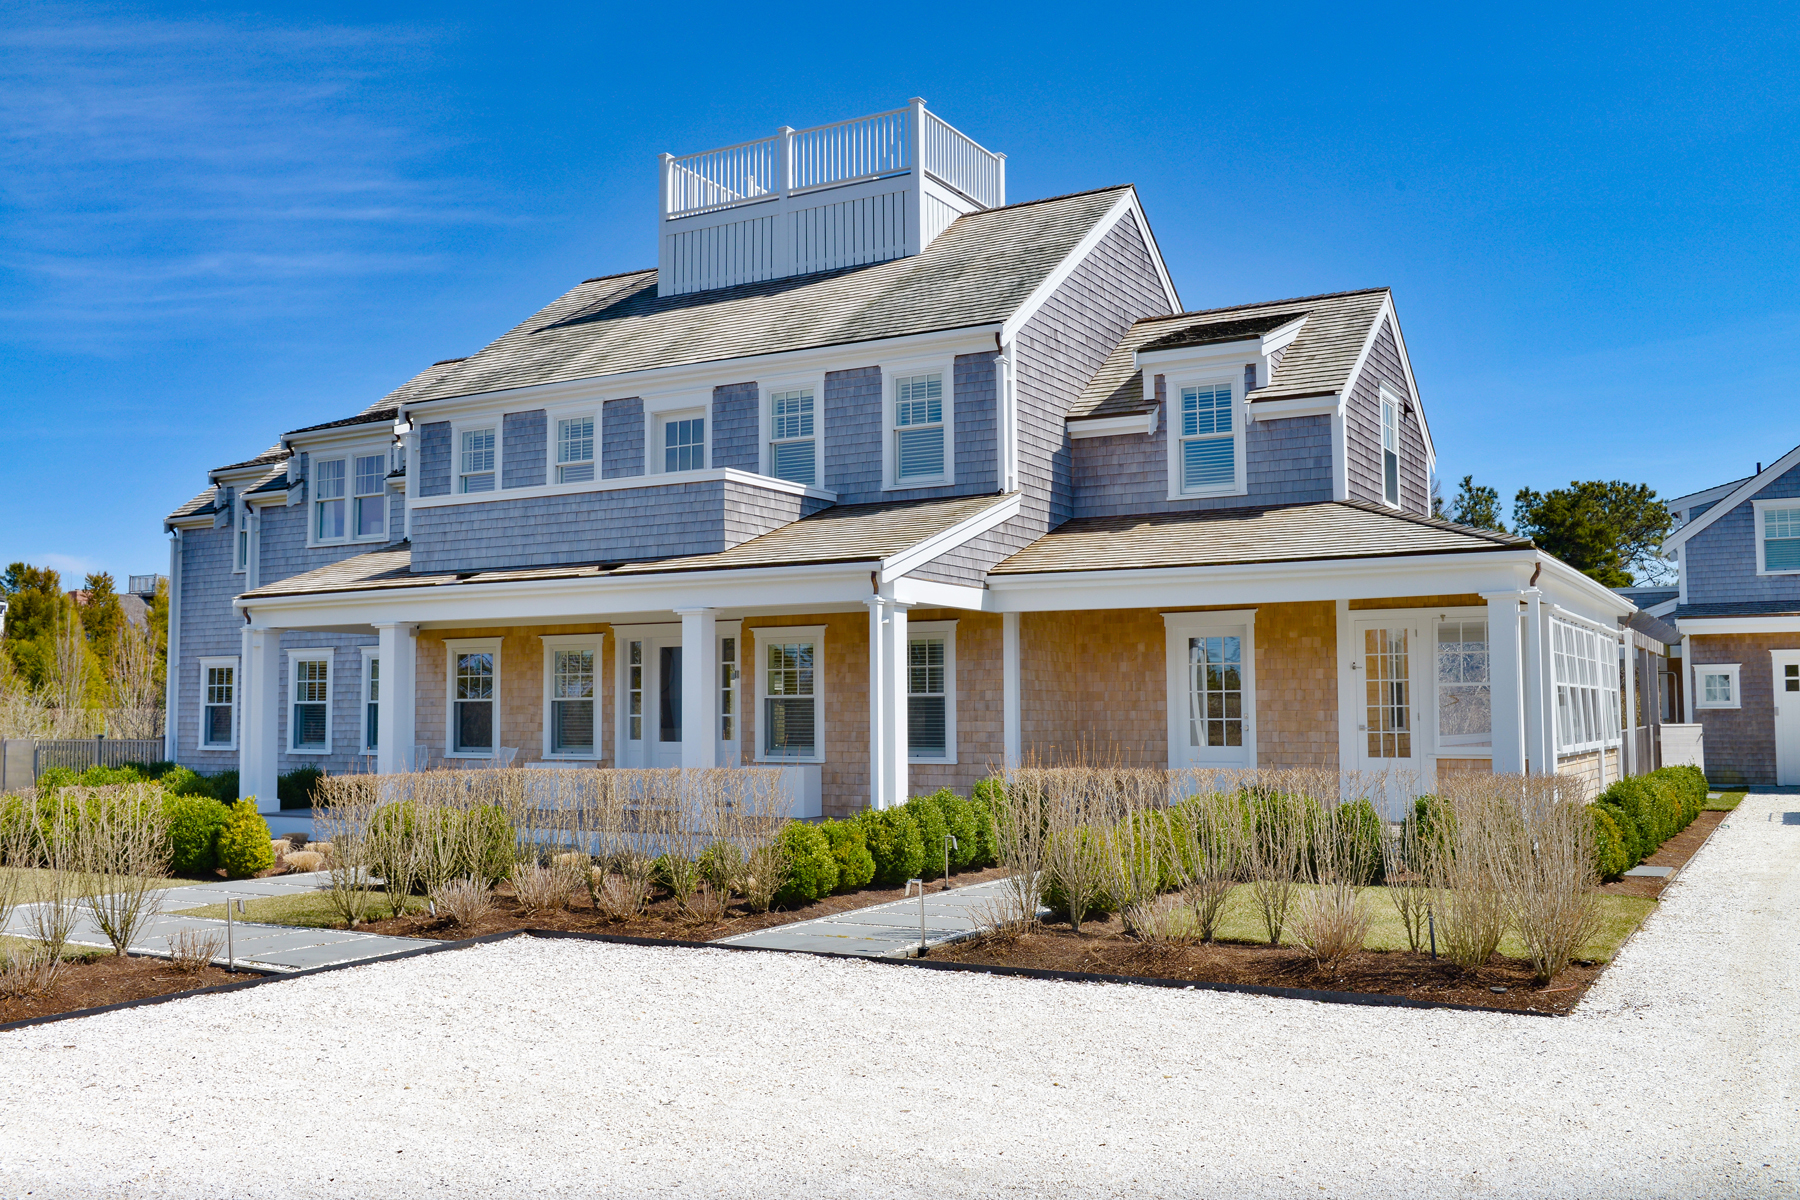 Single Family Home for Active at Modern Architectural Showpiece 11 Monomoy Road Nantucket, Massachusetts 02554 United States